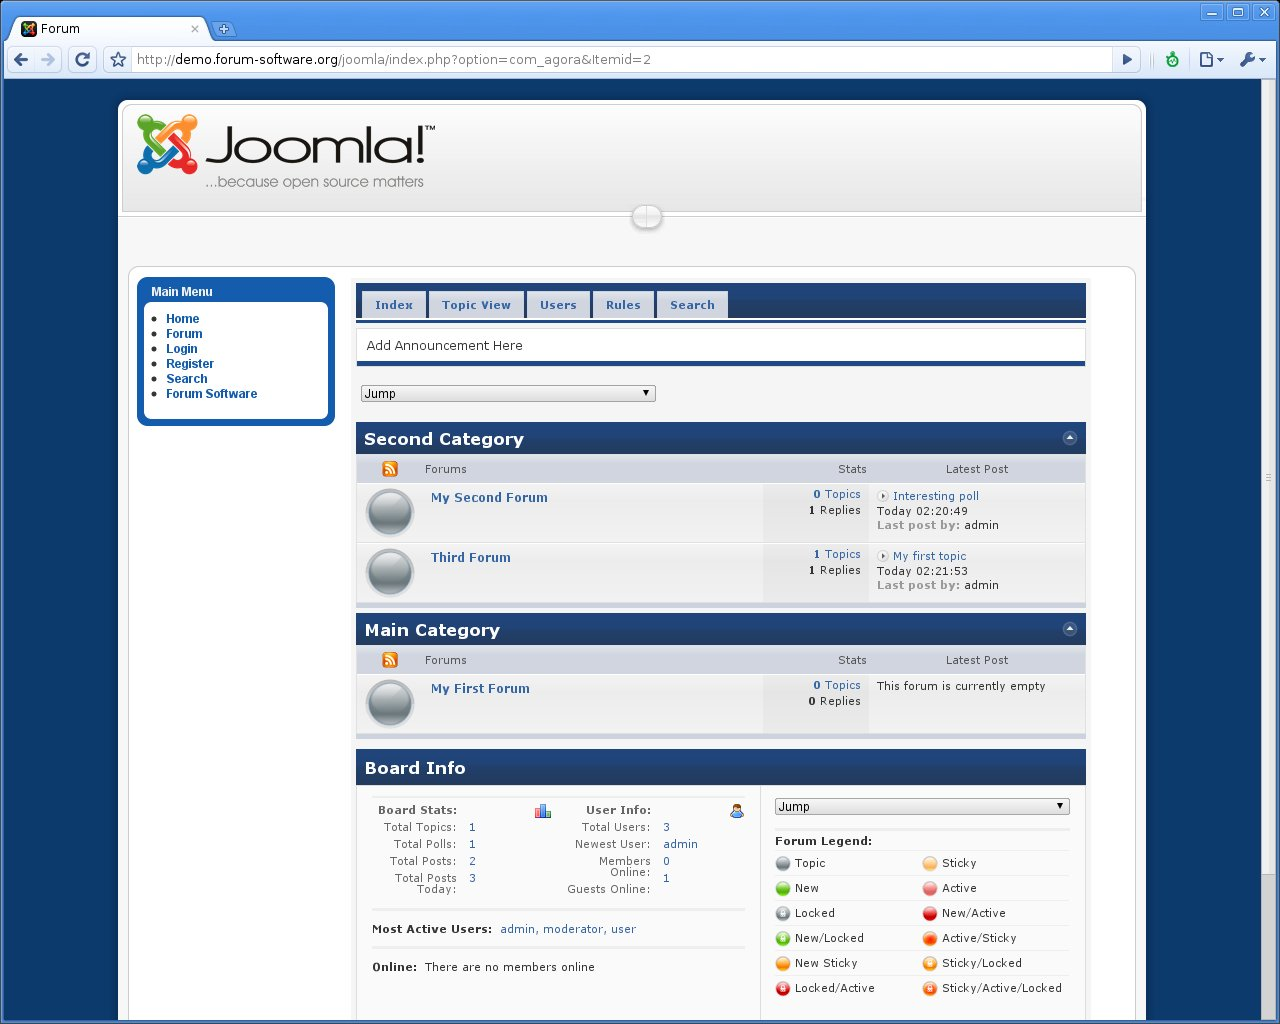 Joomla Forum Review | Forum Software Reviews